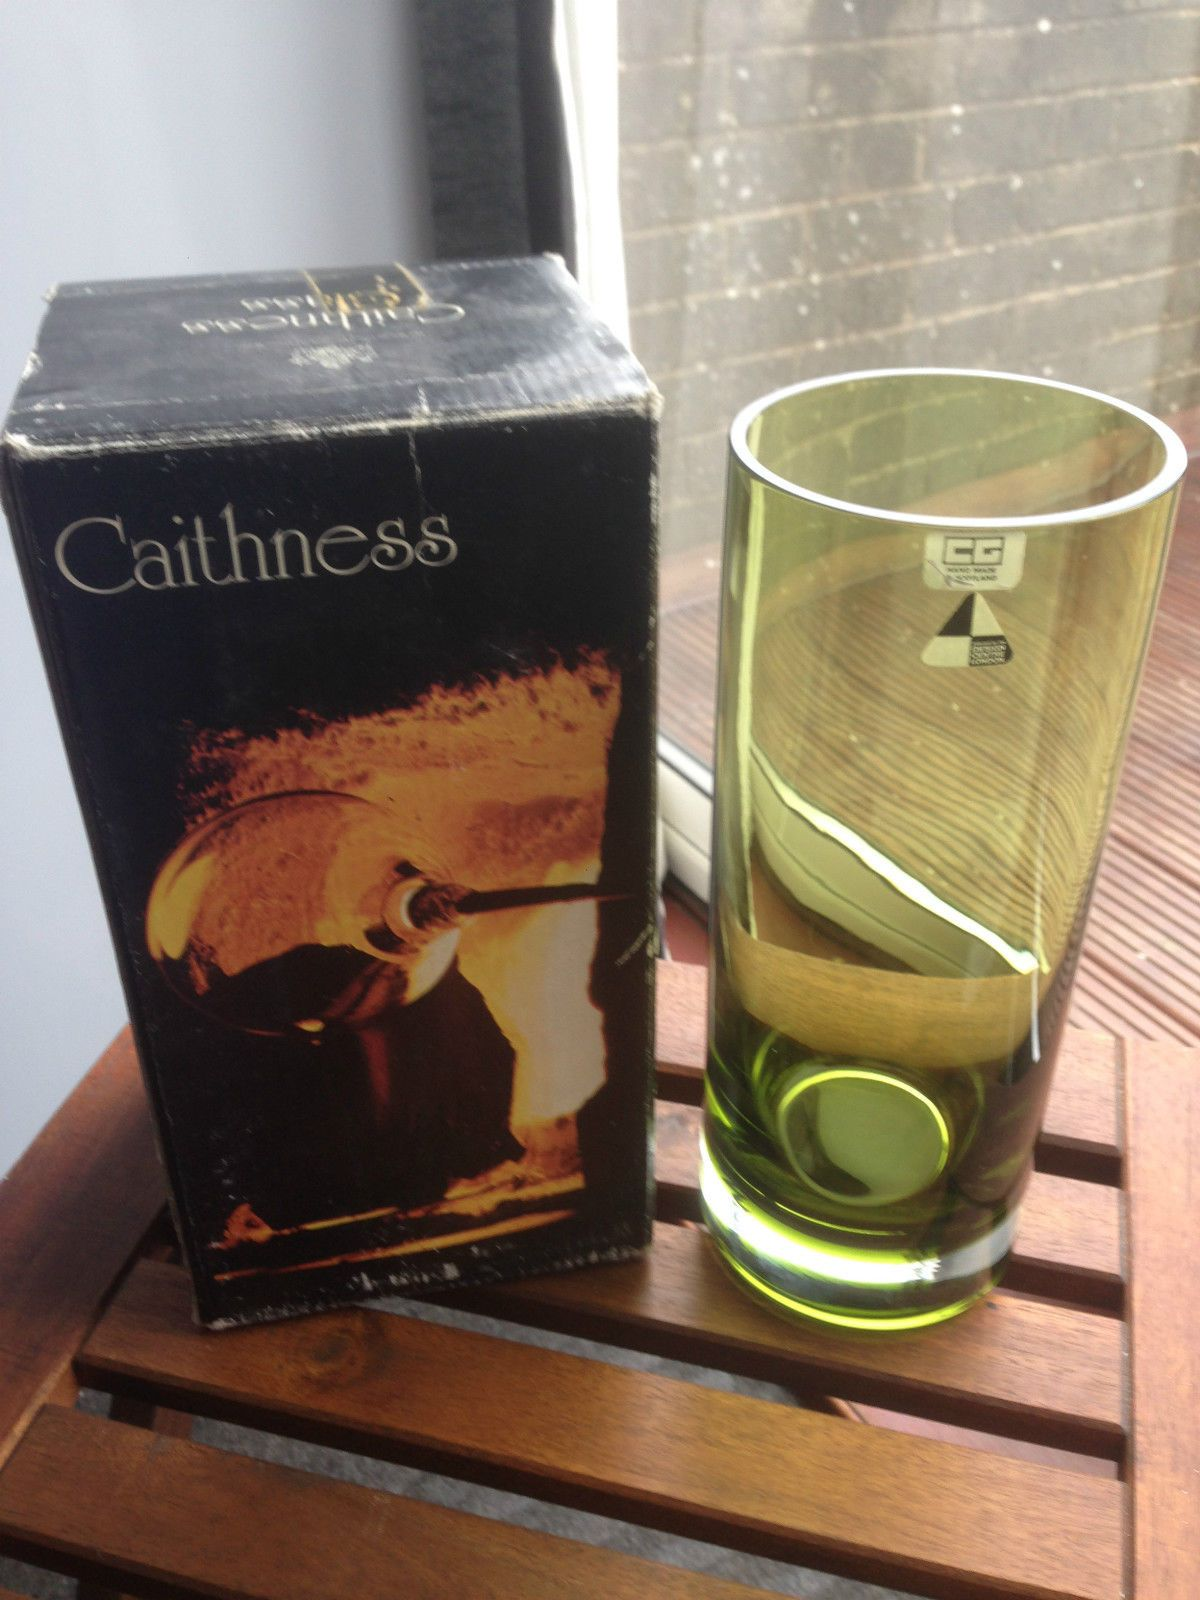 A hand made caithness glass vase ebay caithness glass a hand made caithness glass vase ebay floridaeventfo Images